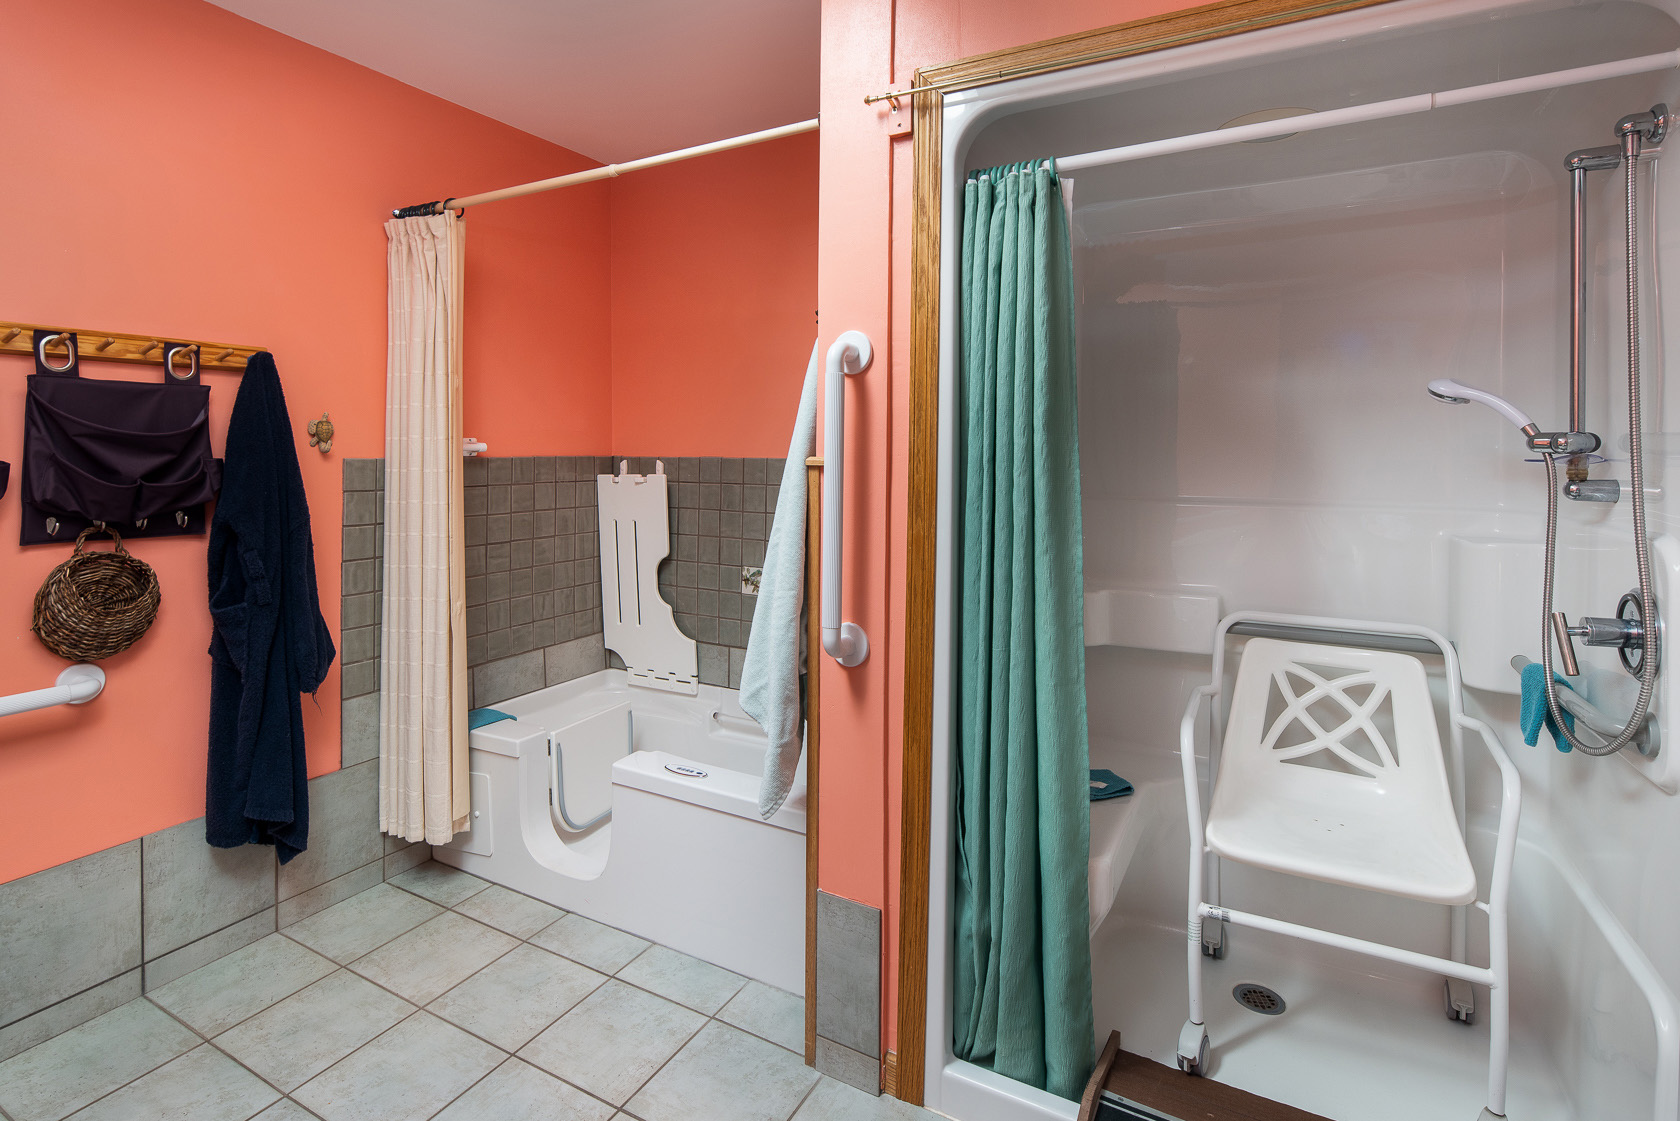 Coral Bath, Tub and Shower